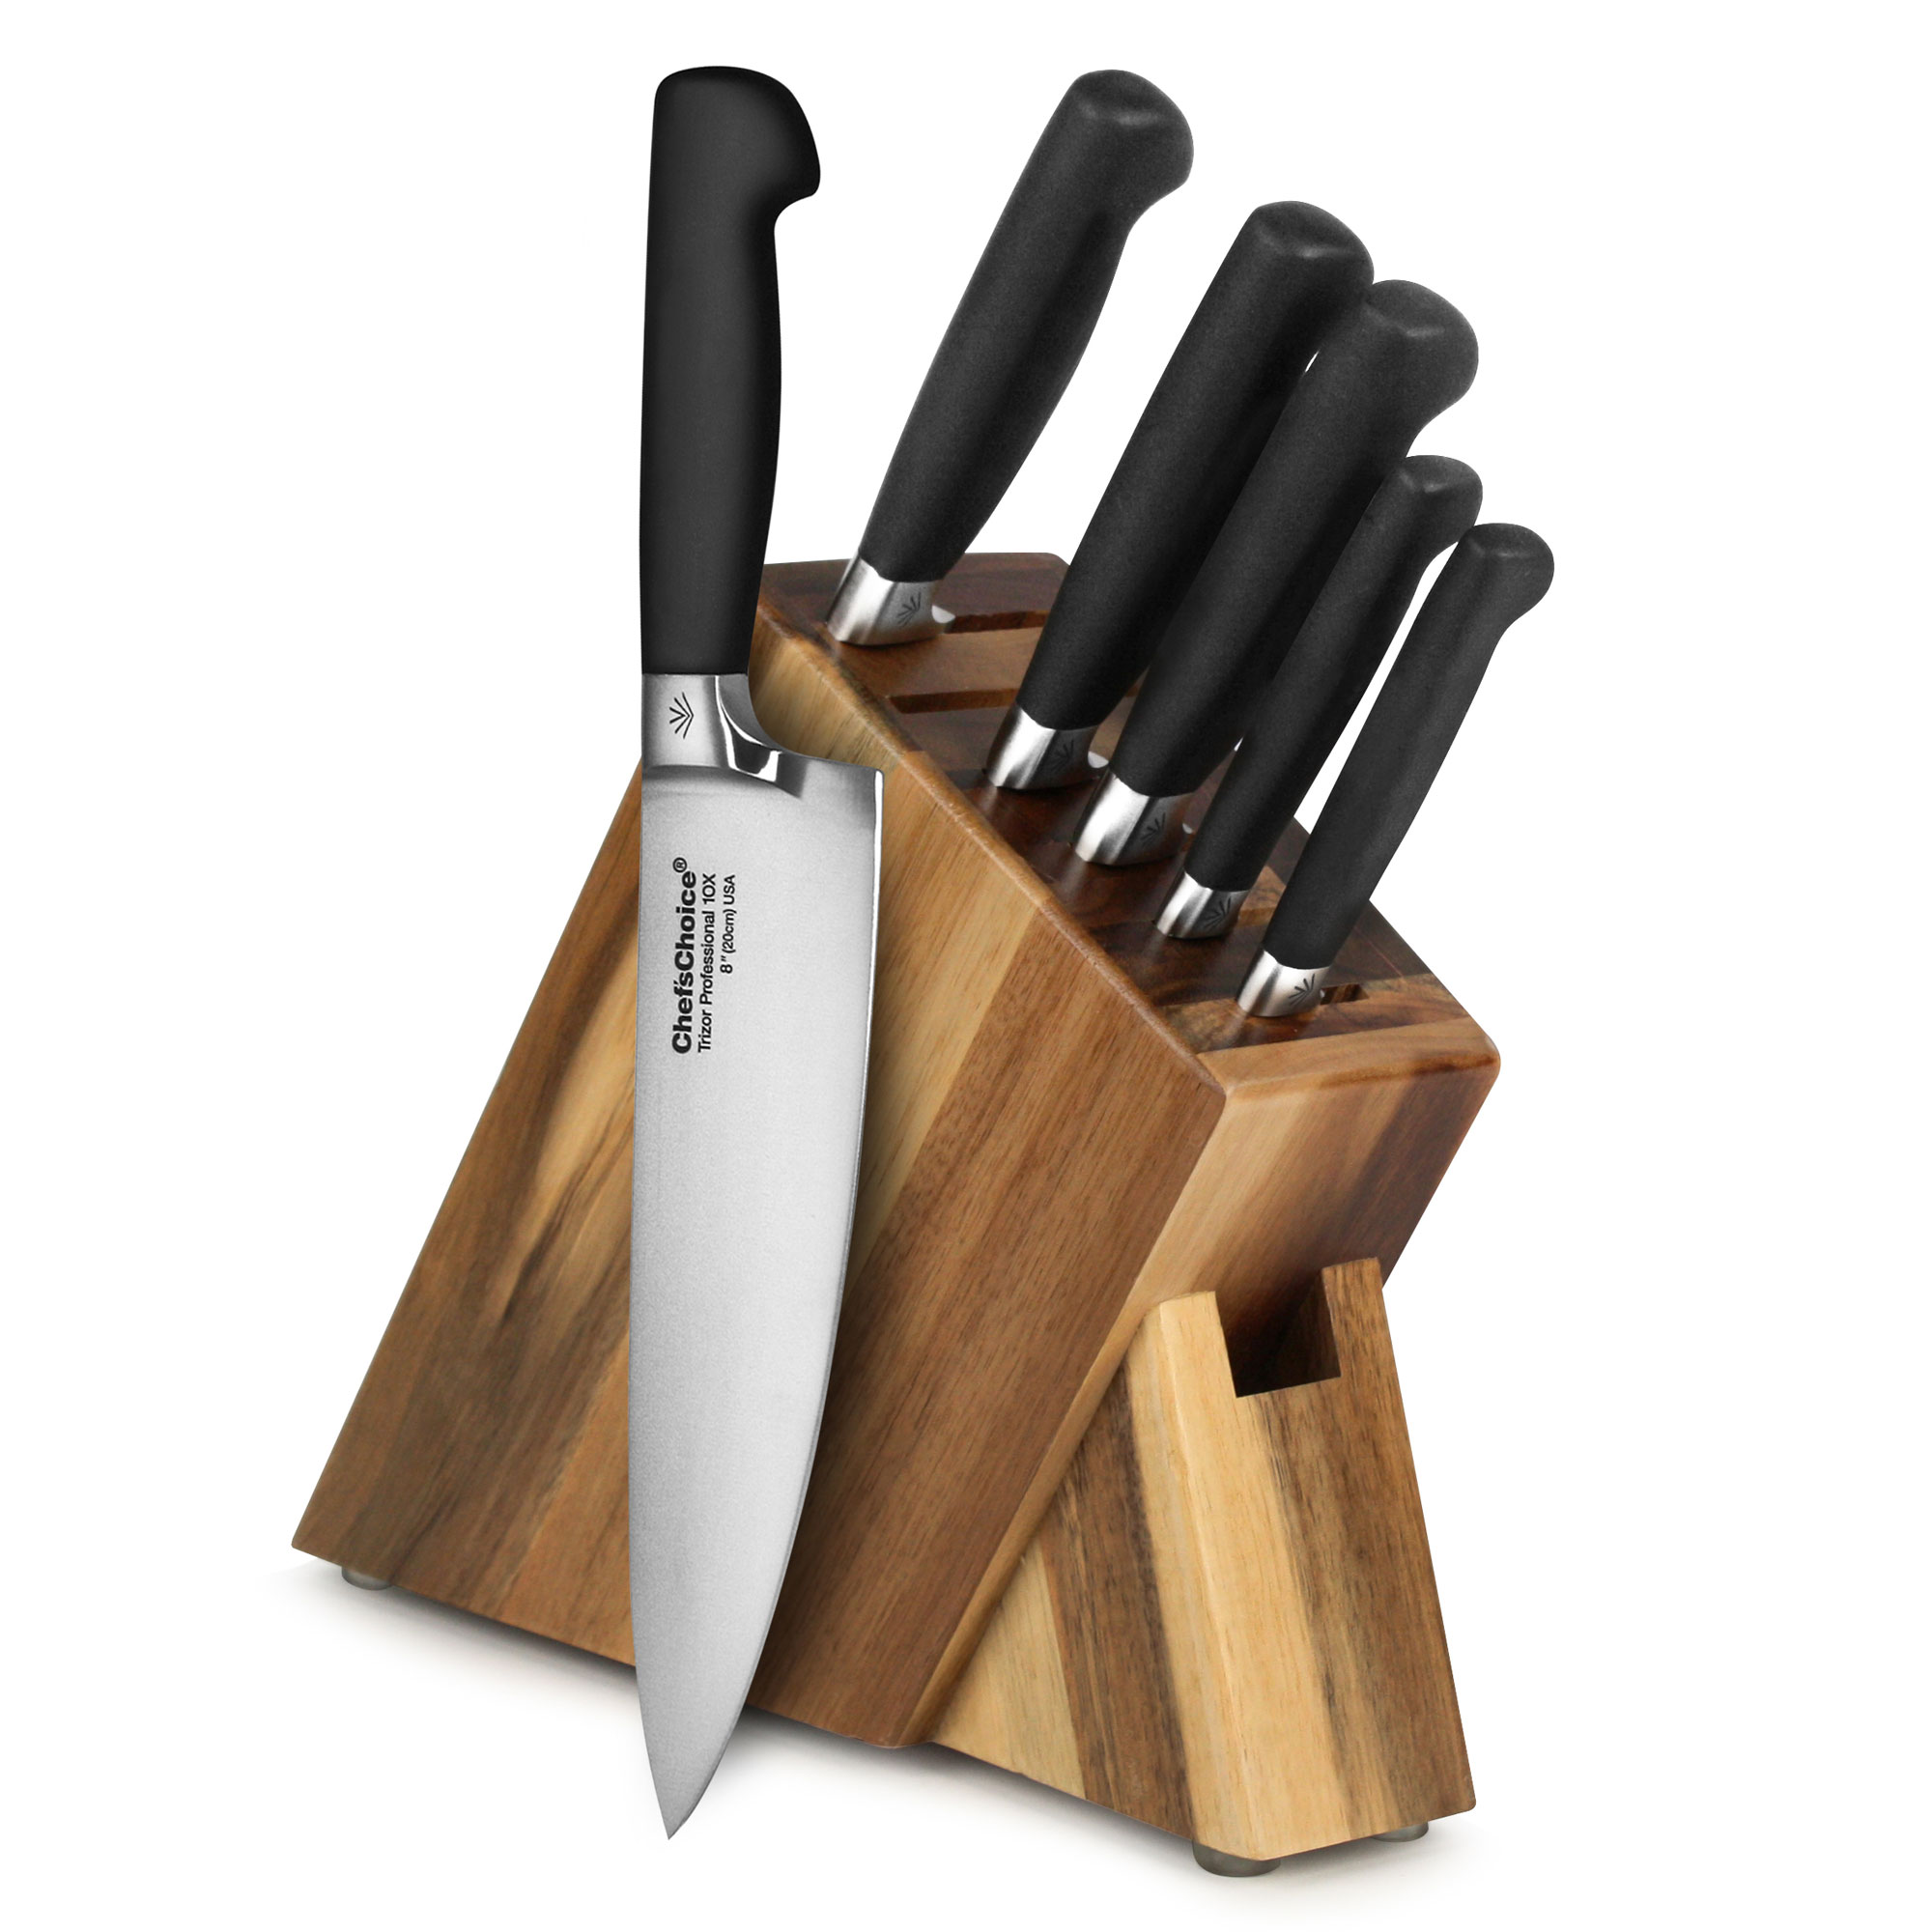 American Made In Usa Kitchen Knife Set By Chef S Choice Trizor 7 Piece